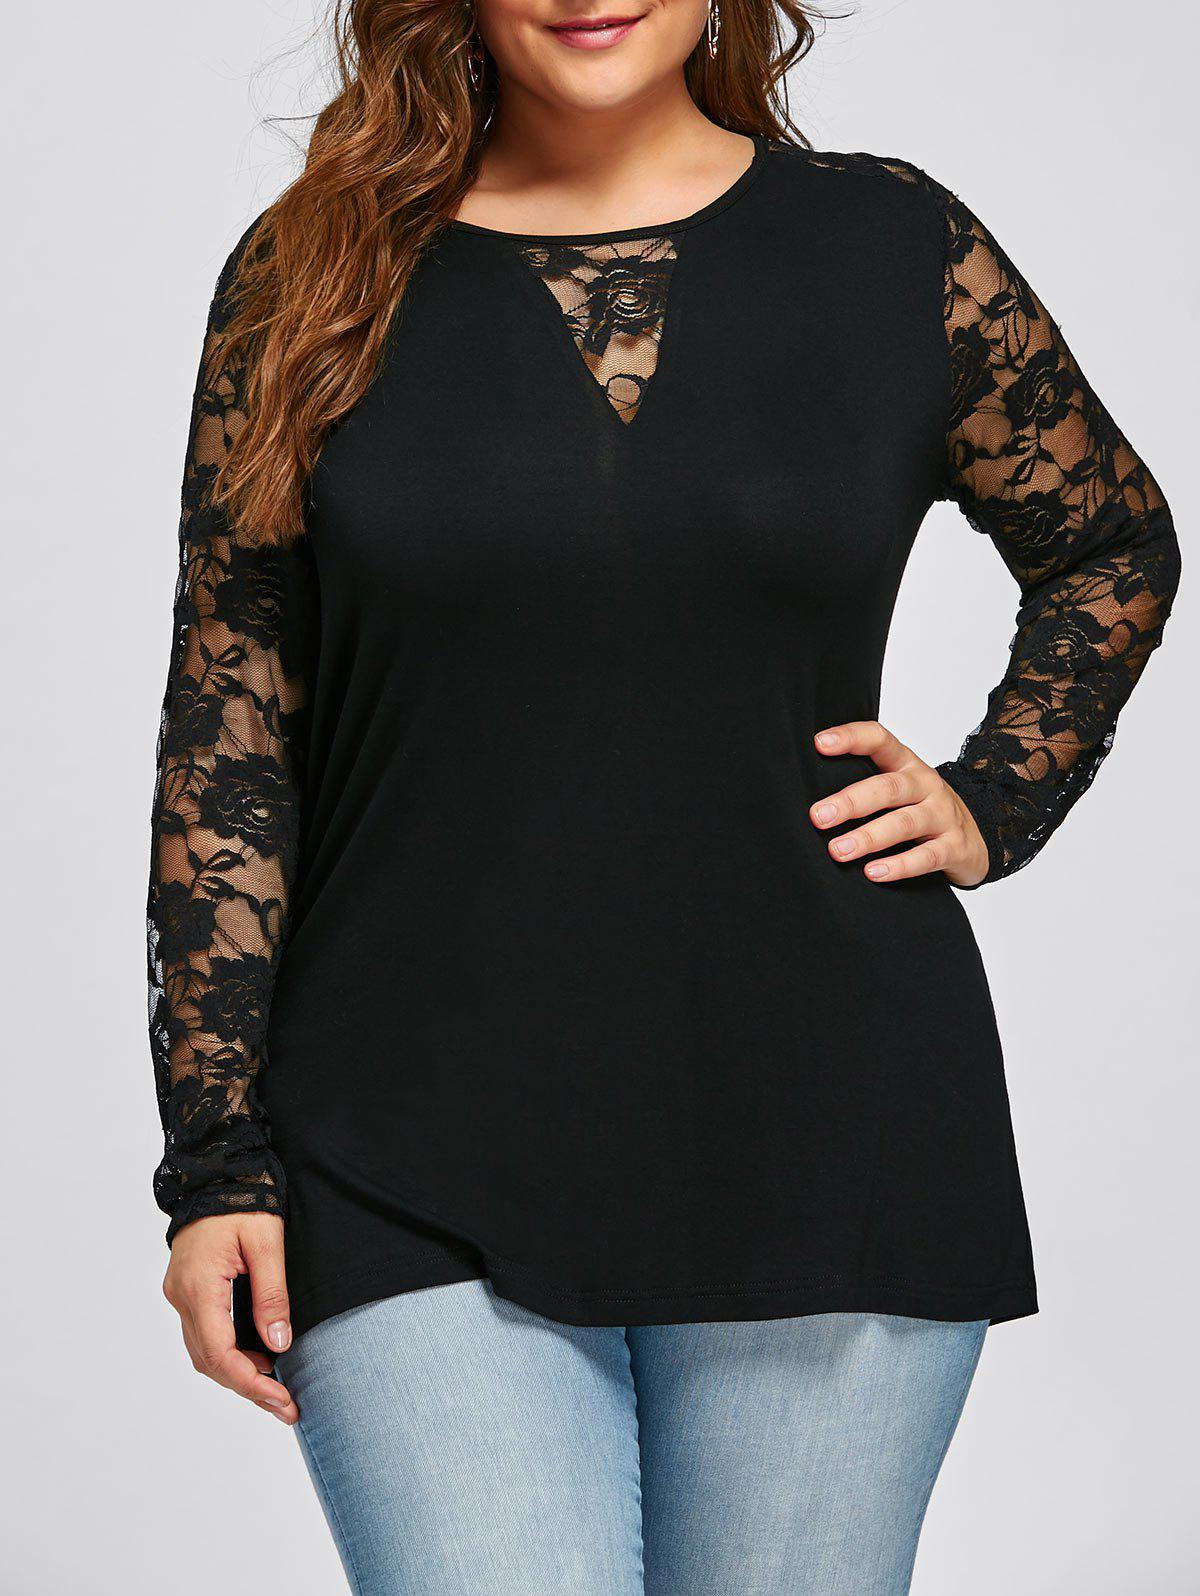 Plus Size Long Sleeve Lace Yoke TopWOMEN<br><br>Size: 2XL; Color: BLACK; Material: Rayon,Spandex; Shirt Length: Long; Sleeve Length: Full; Collar: Keyhole Neck; Style: Casual; Season: Fall,Spring; Embellishment: Lace; Pattern Type: Solid; Weight: 0.2500kg; Package Contents: 1 x Top;